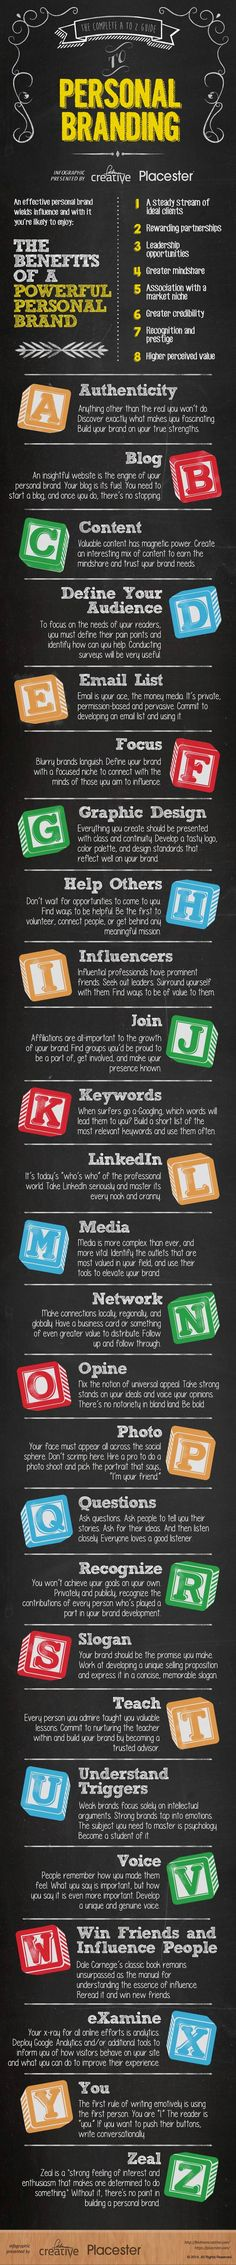 Everyone's Social Media Resource The complete A - Z guide to personal branding For loads of Social Media marketing tips & resources visit www.socialmediamamma.com Branding Infographic